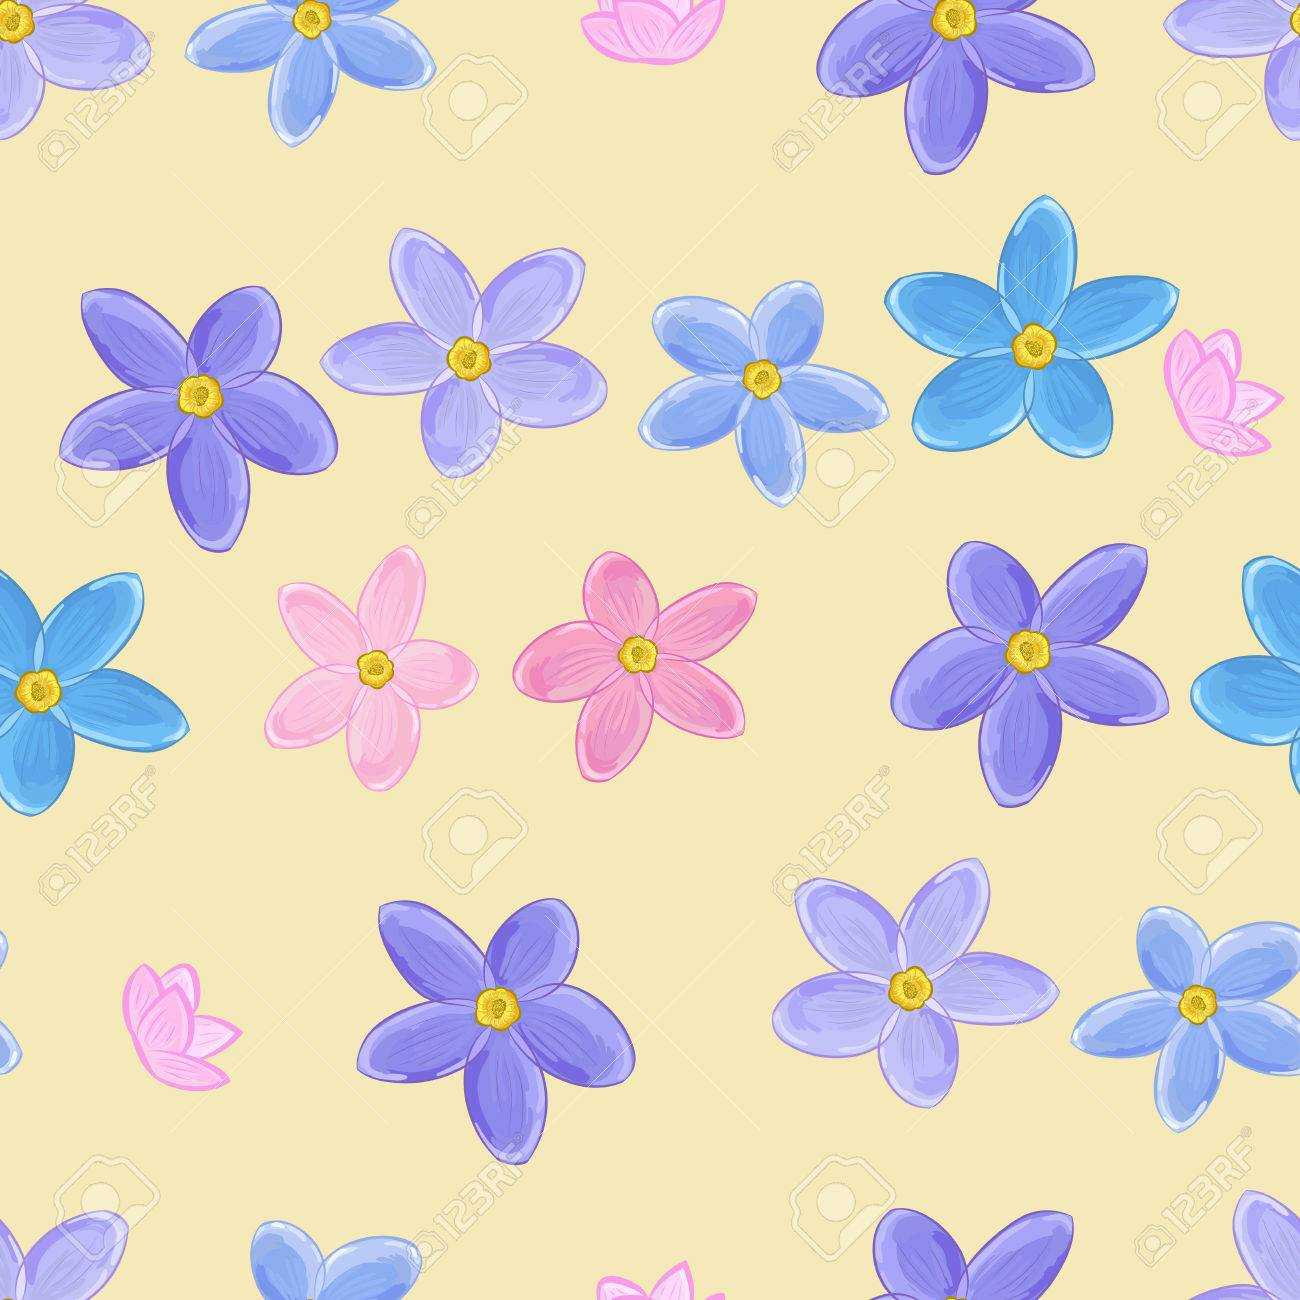 Floral Seamless Pattern With Forget Me Not Forget Me Not Flowers